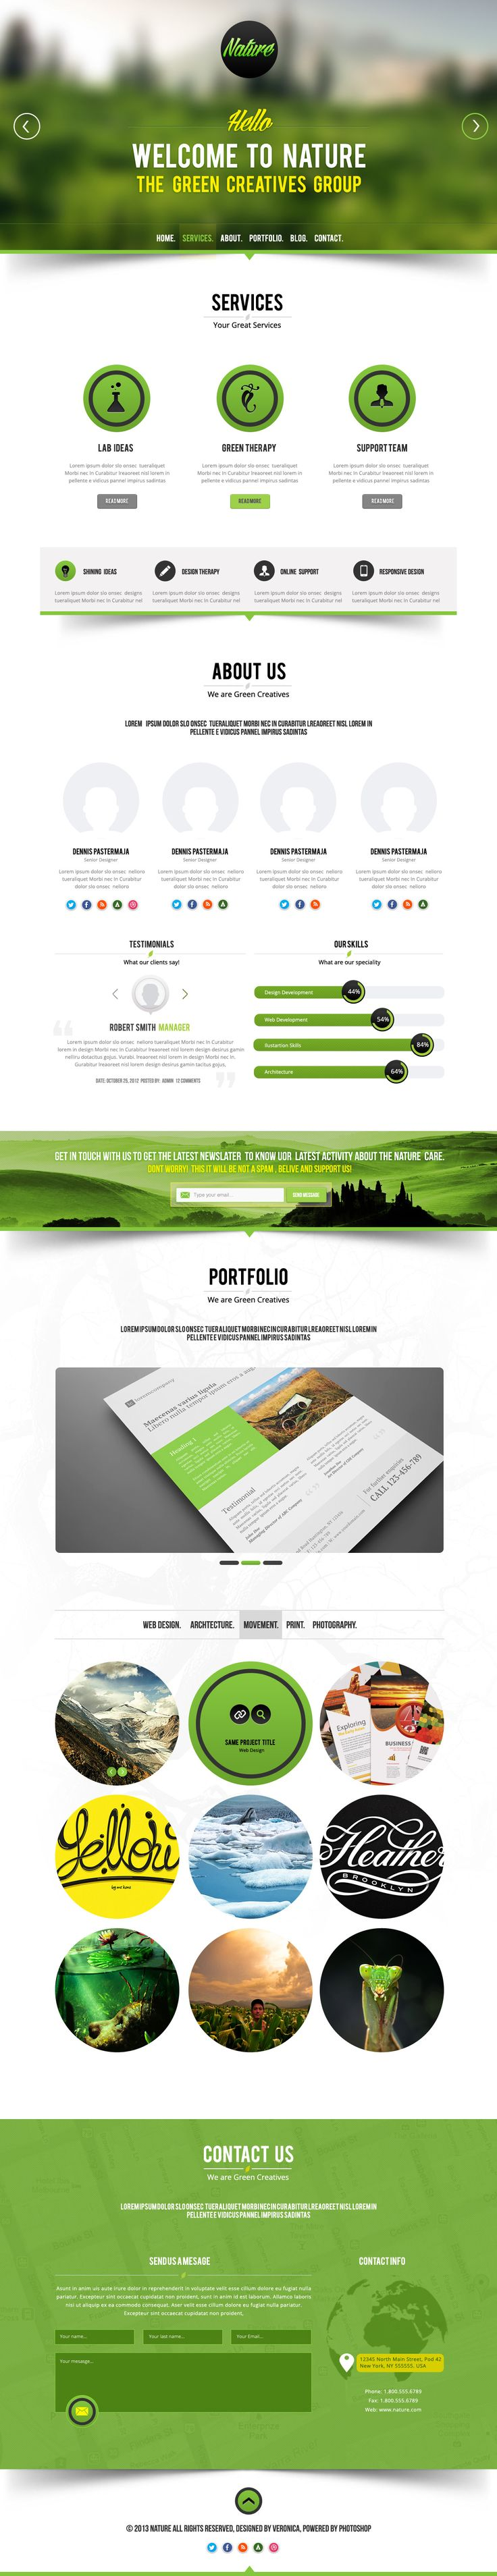 Nature Psd Template | #webdesign #it #web #design #layout #userinterface #website #webdesign <<< repinned by an #advertising #agency from #Hamburg / #Germany - www.BlickeDeeler.de | Follow us on www.facebook.com/BlickeDeeler